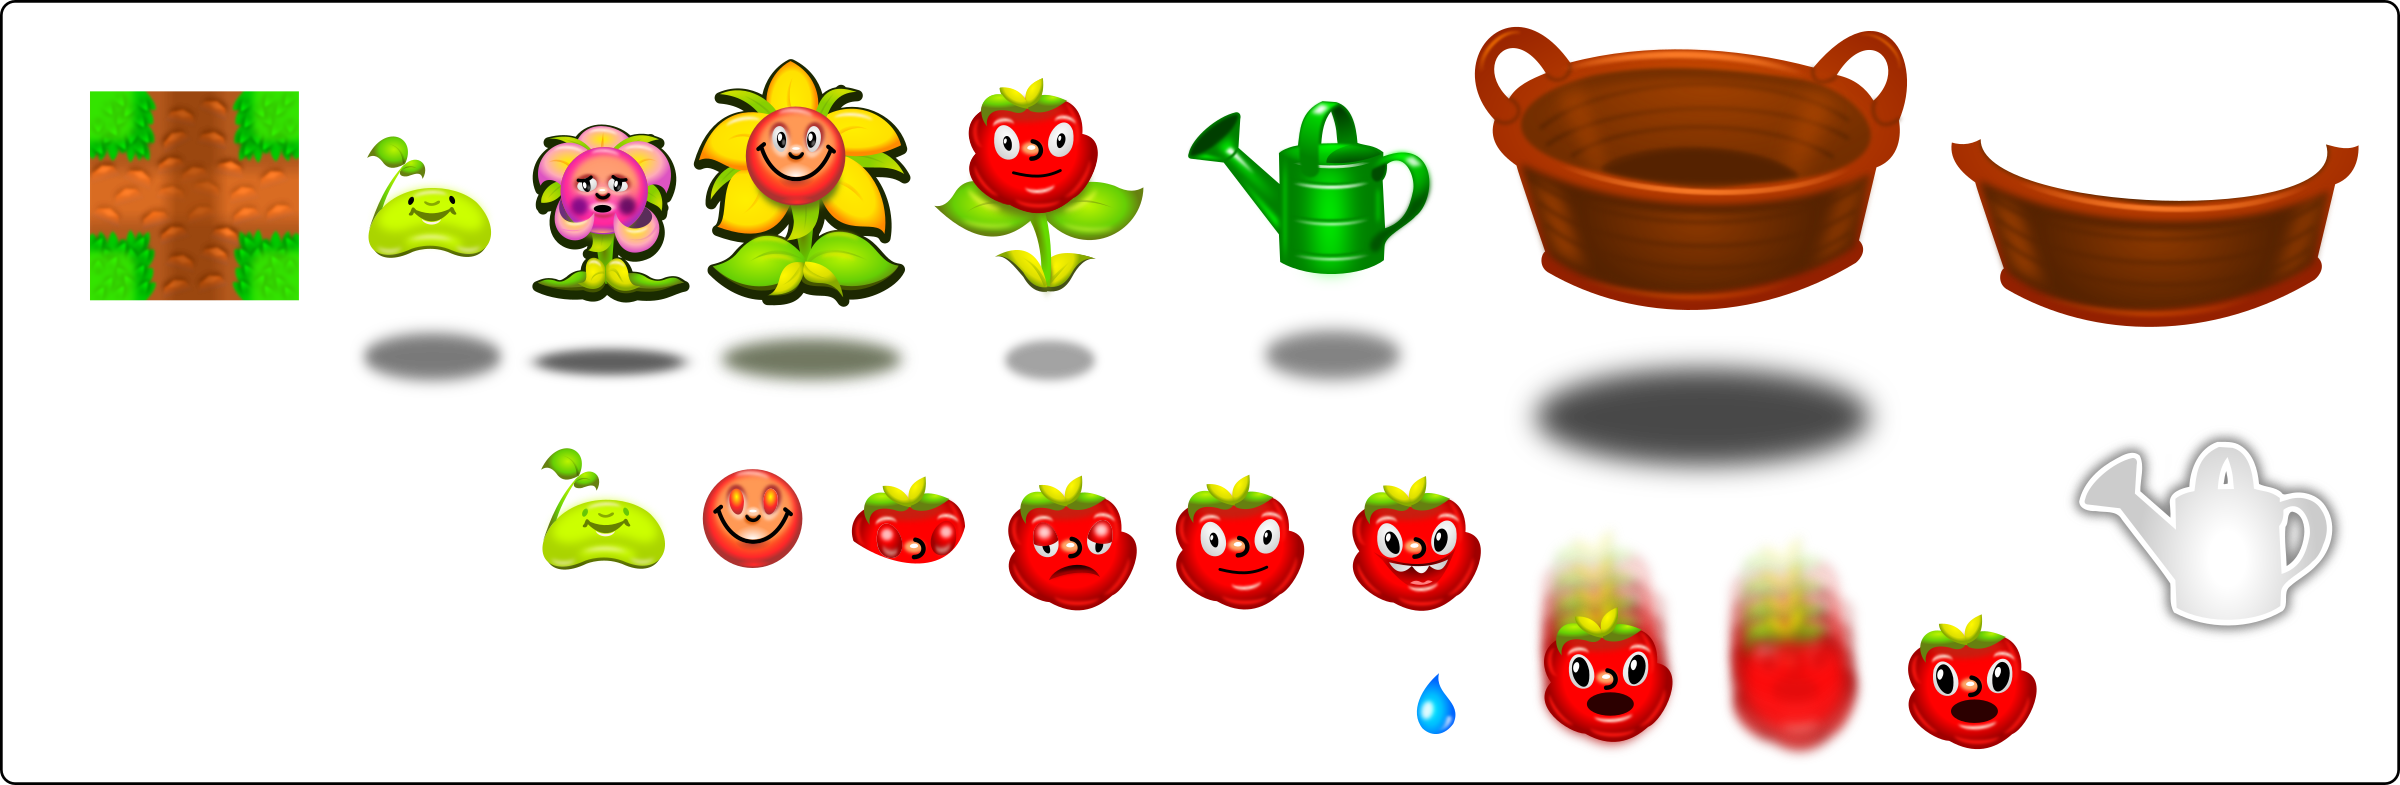 Game clipart mobile game. Characters sheet production quality